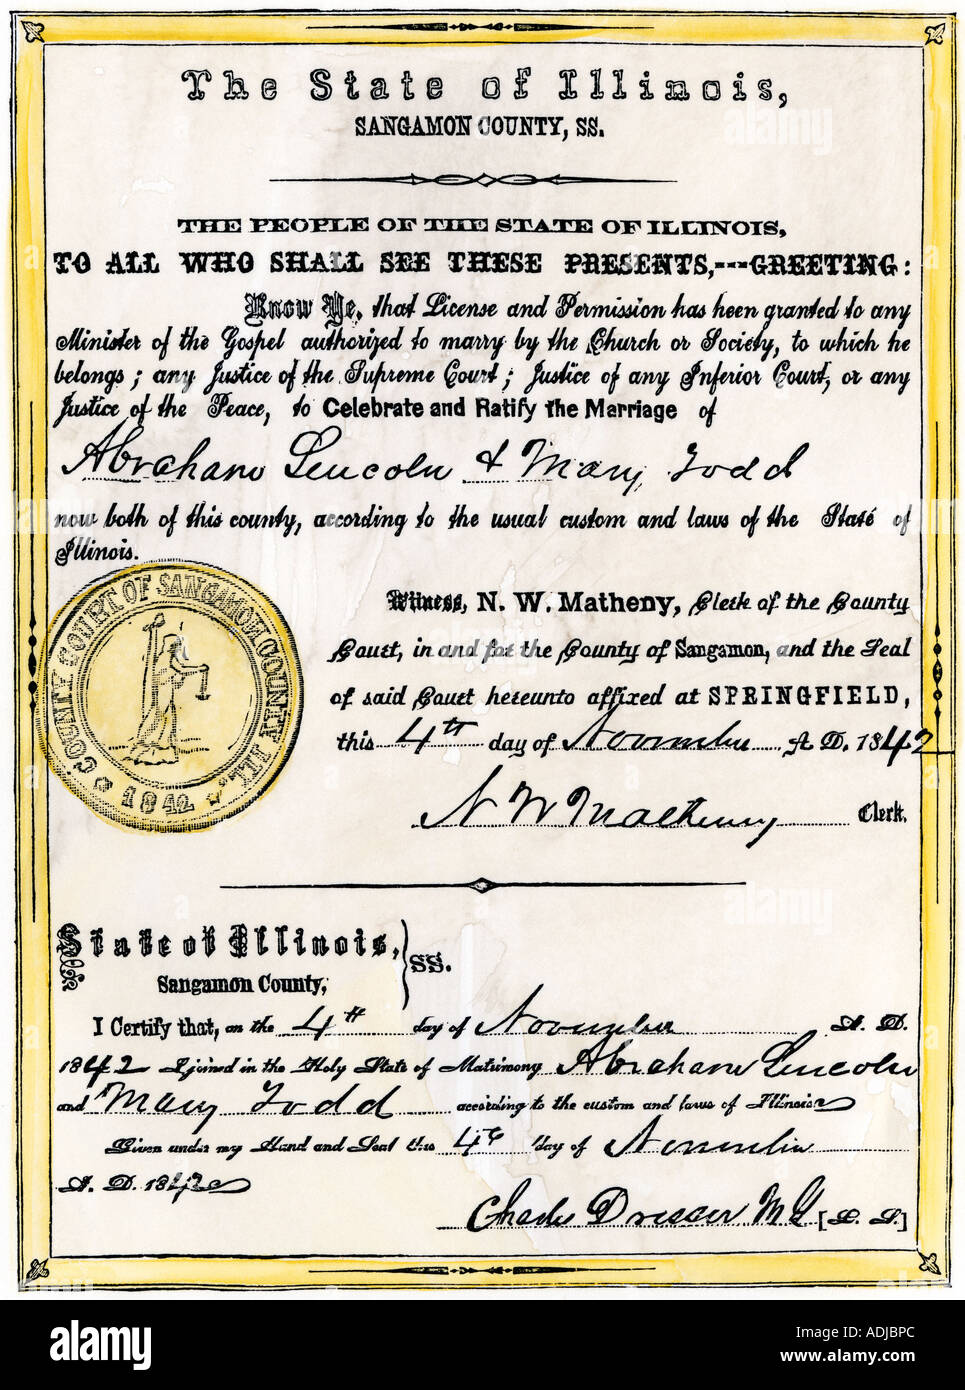 Marriage certificate of Abraham Lincoln and Mary Todd 1842. Hand-colored woodcut - Stock Image